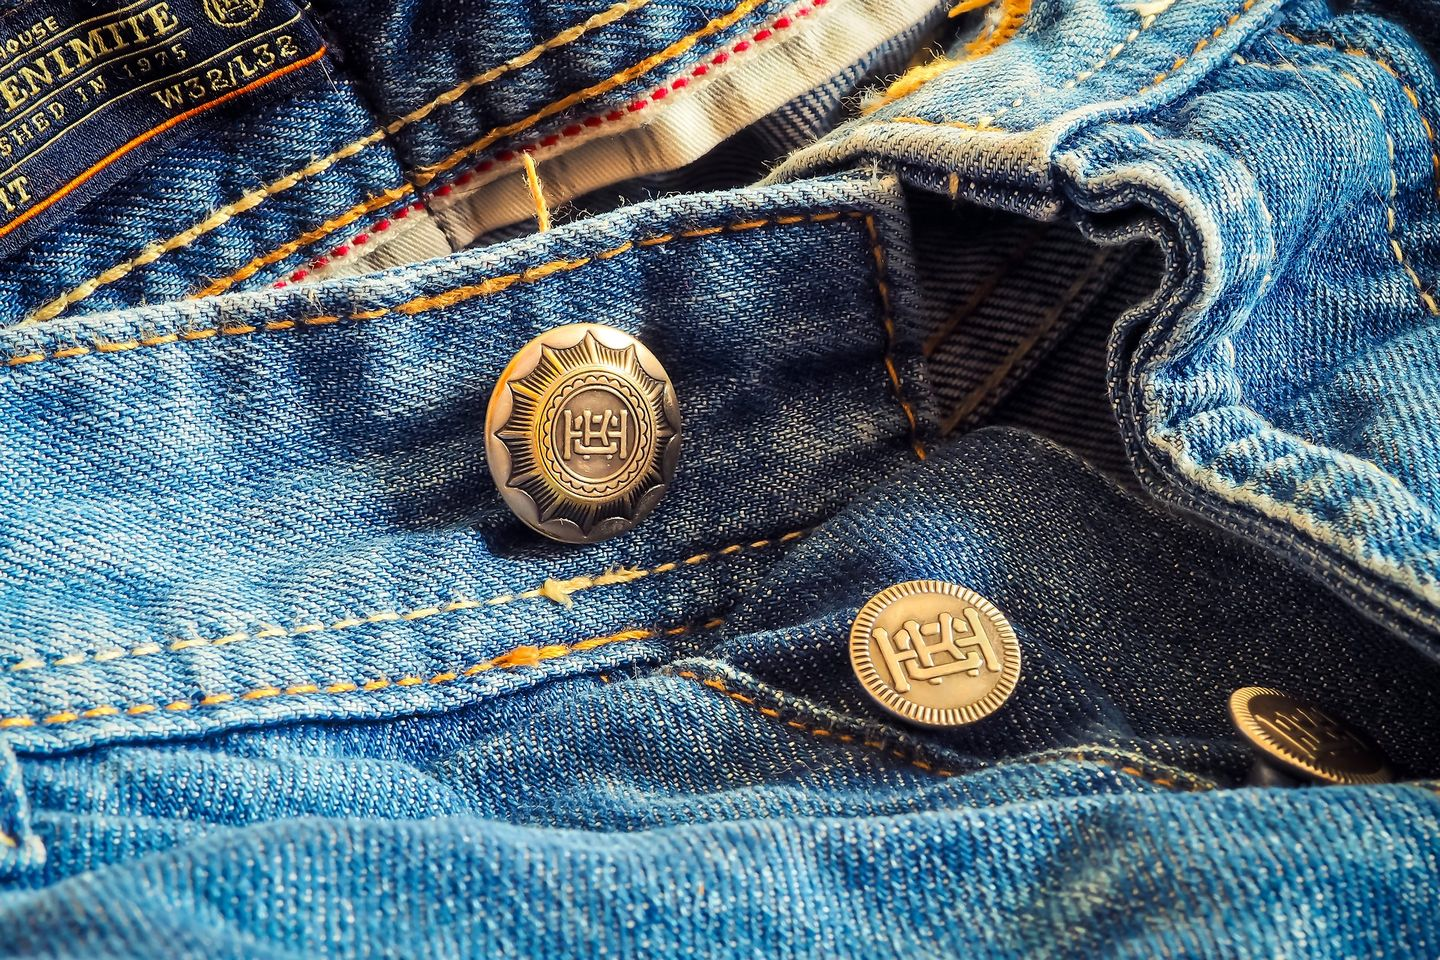 Custom hardware on a pair of jeans